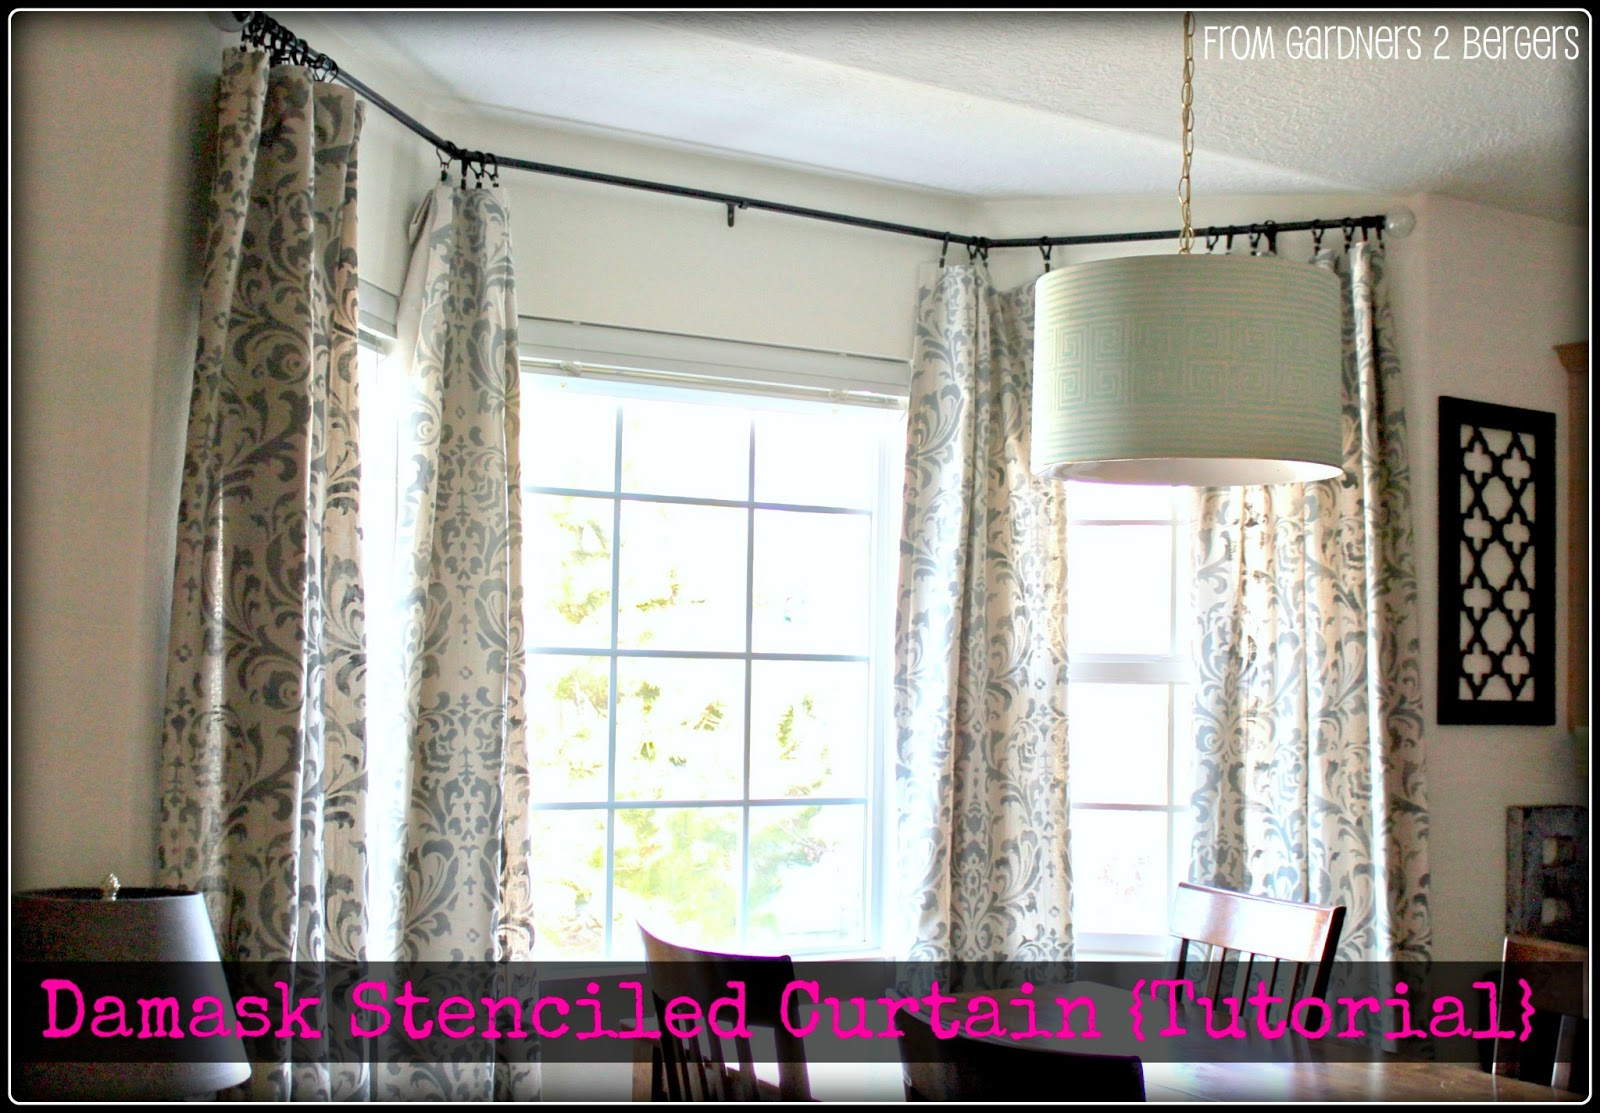 Damask-Stenciled-Curtain-Tutorial